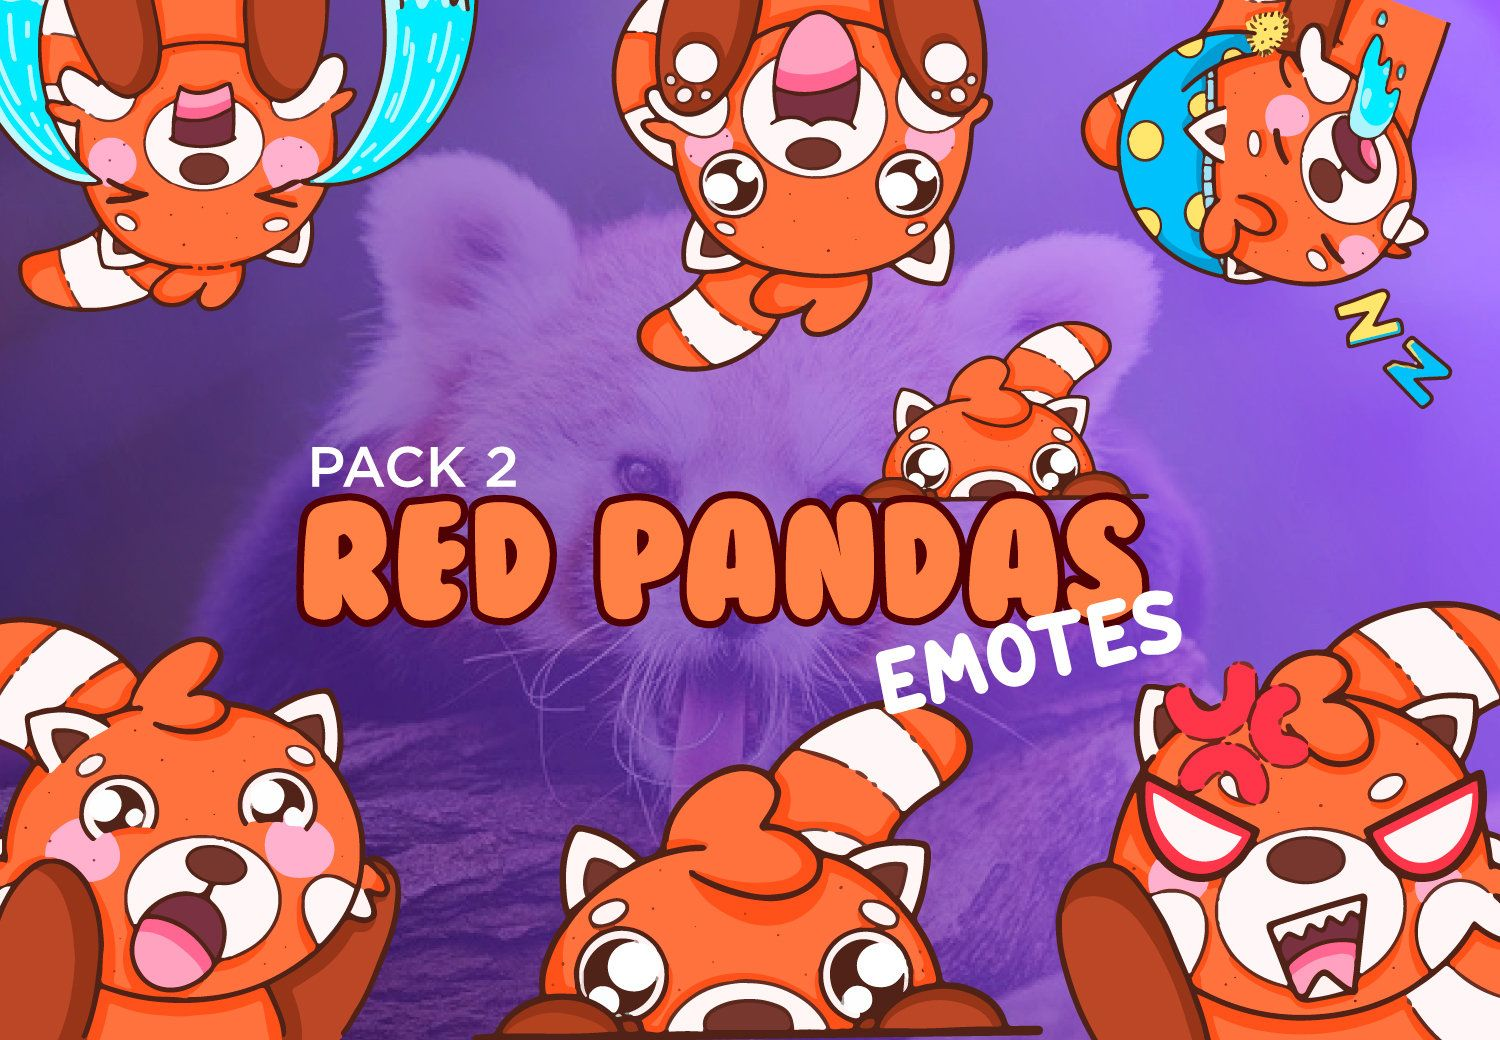 6 Cute Red Pandas Twitch Discord And Youtube Emotes Pack 2 In 2020 Red Panda Panda Cute